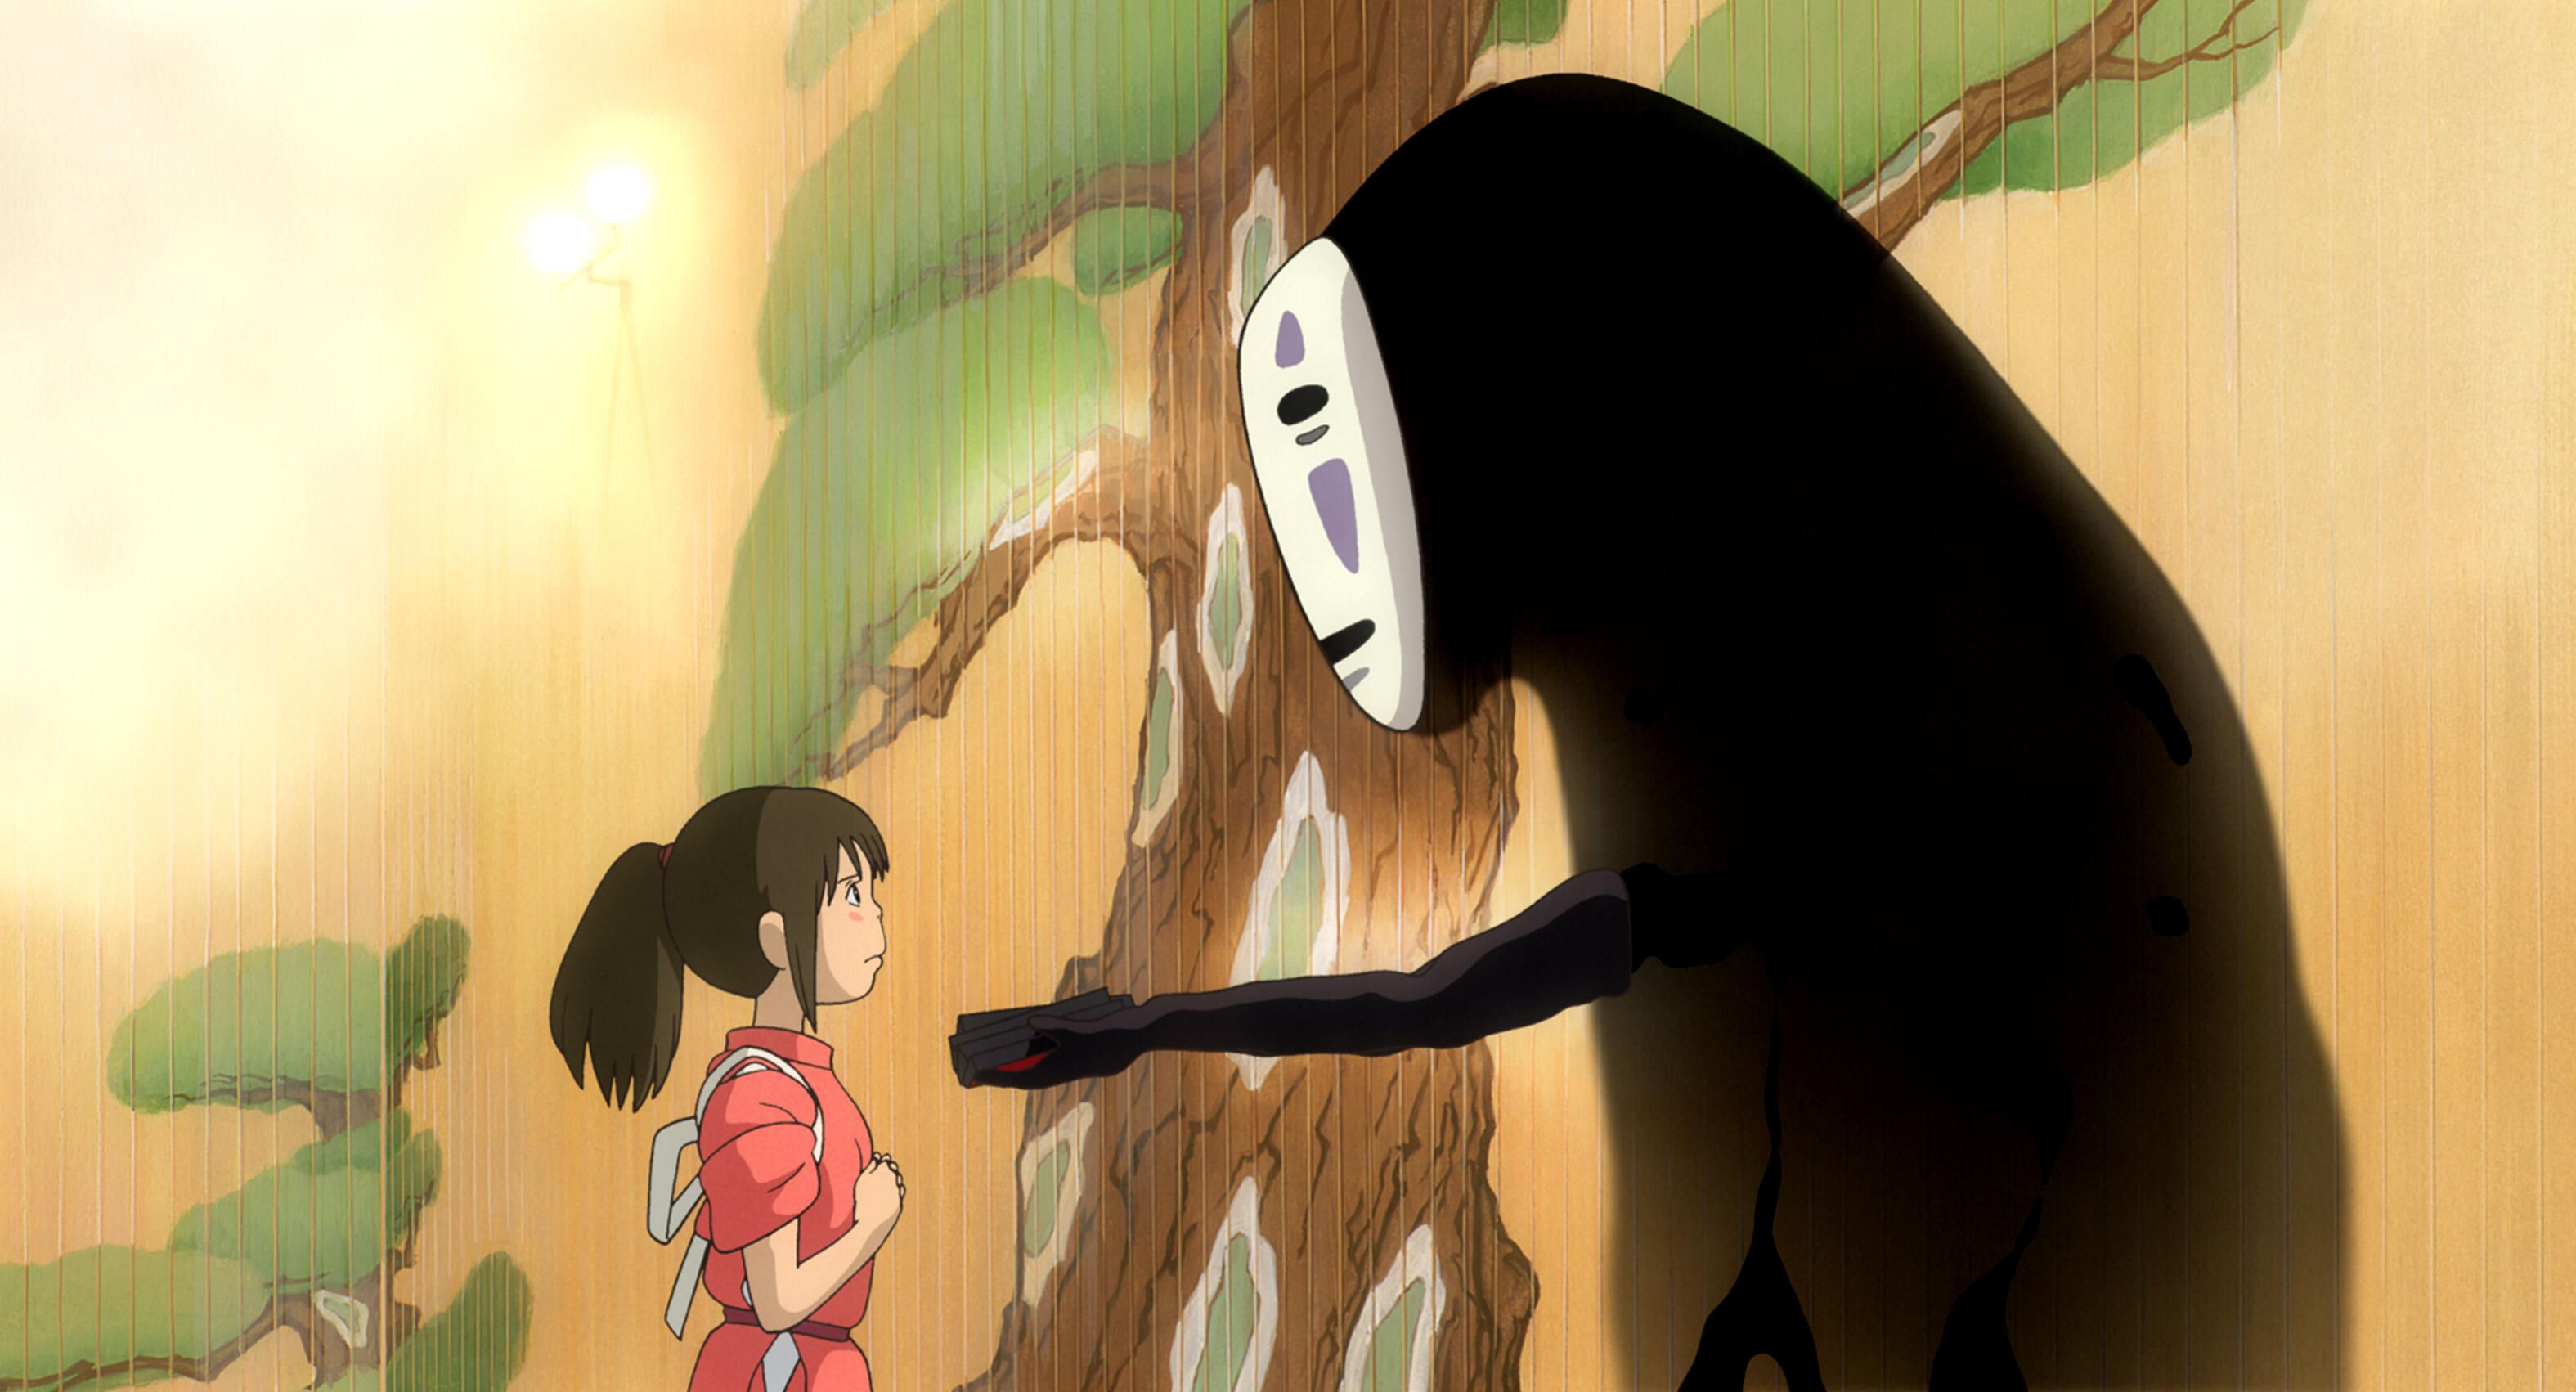 Studio Ghibli S Movies On Hbo Max The Best Ones Ranked Cnet